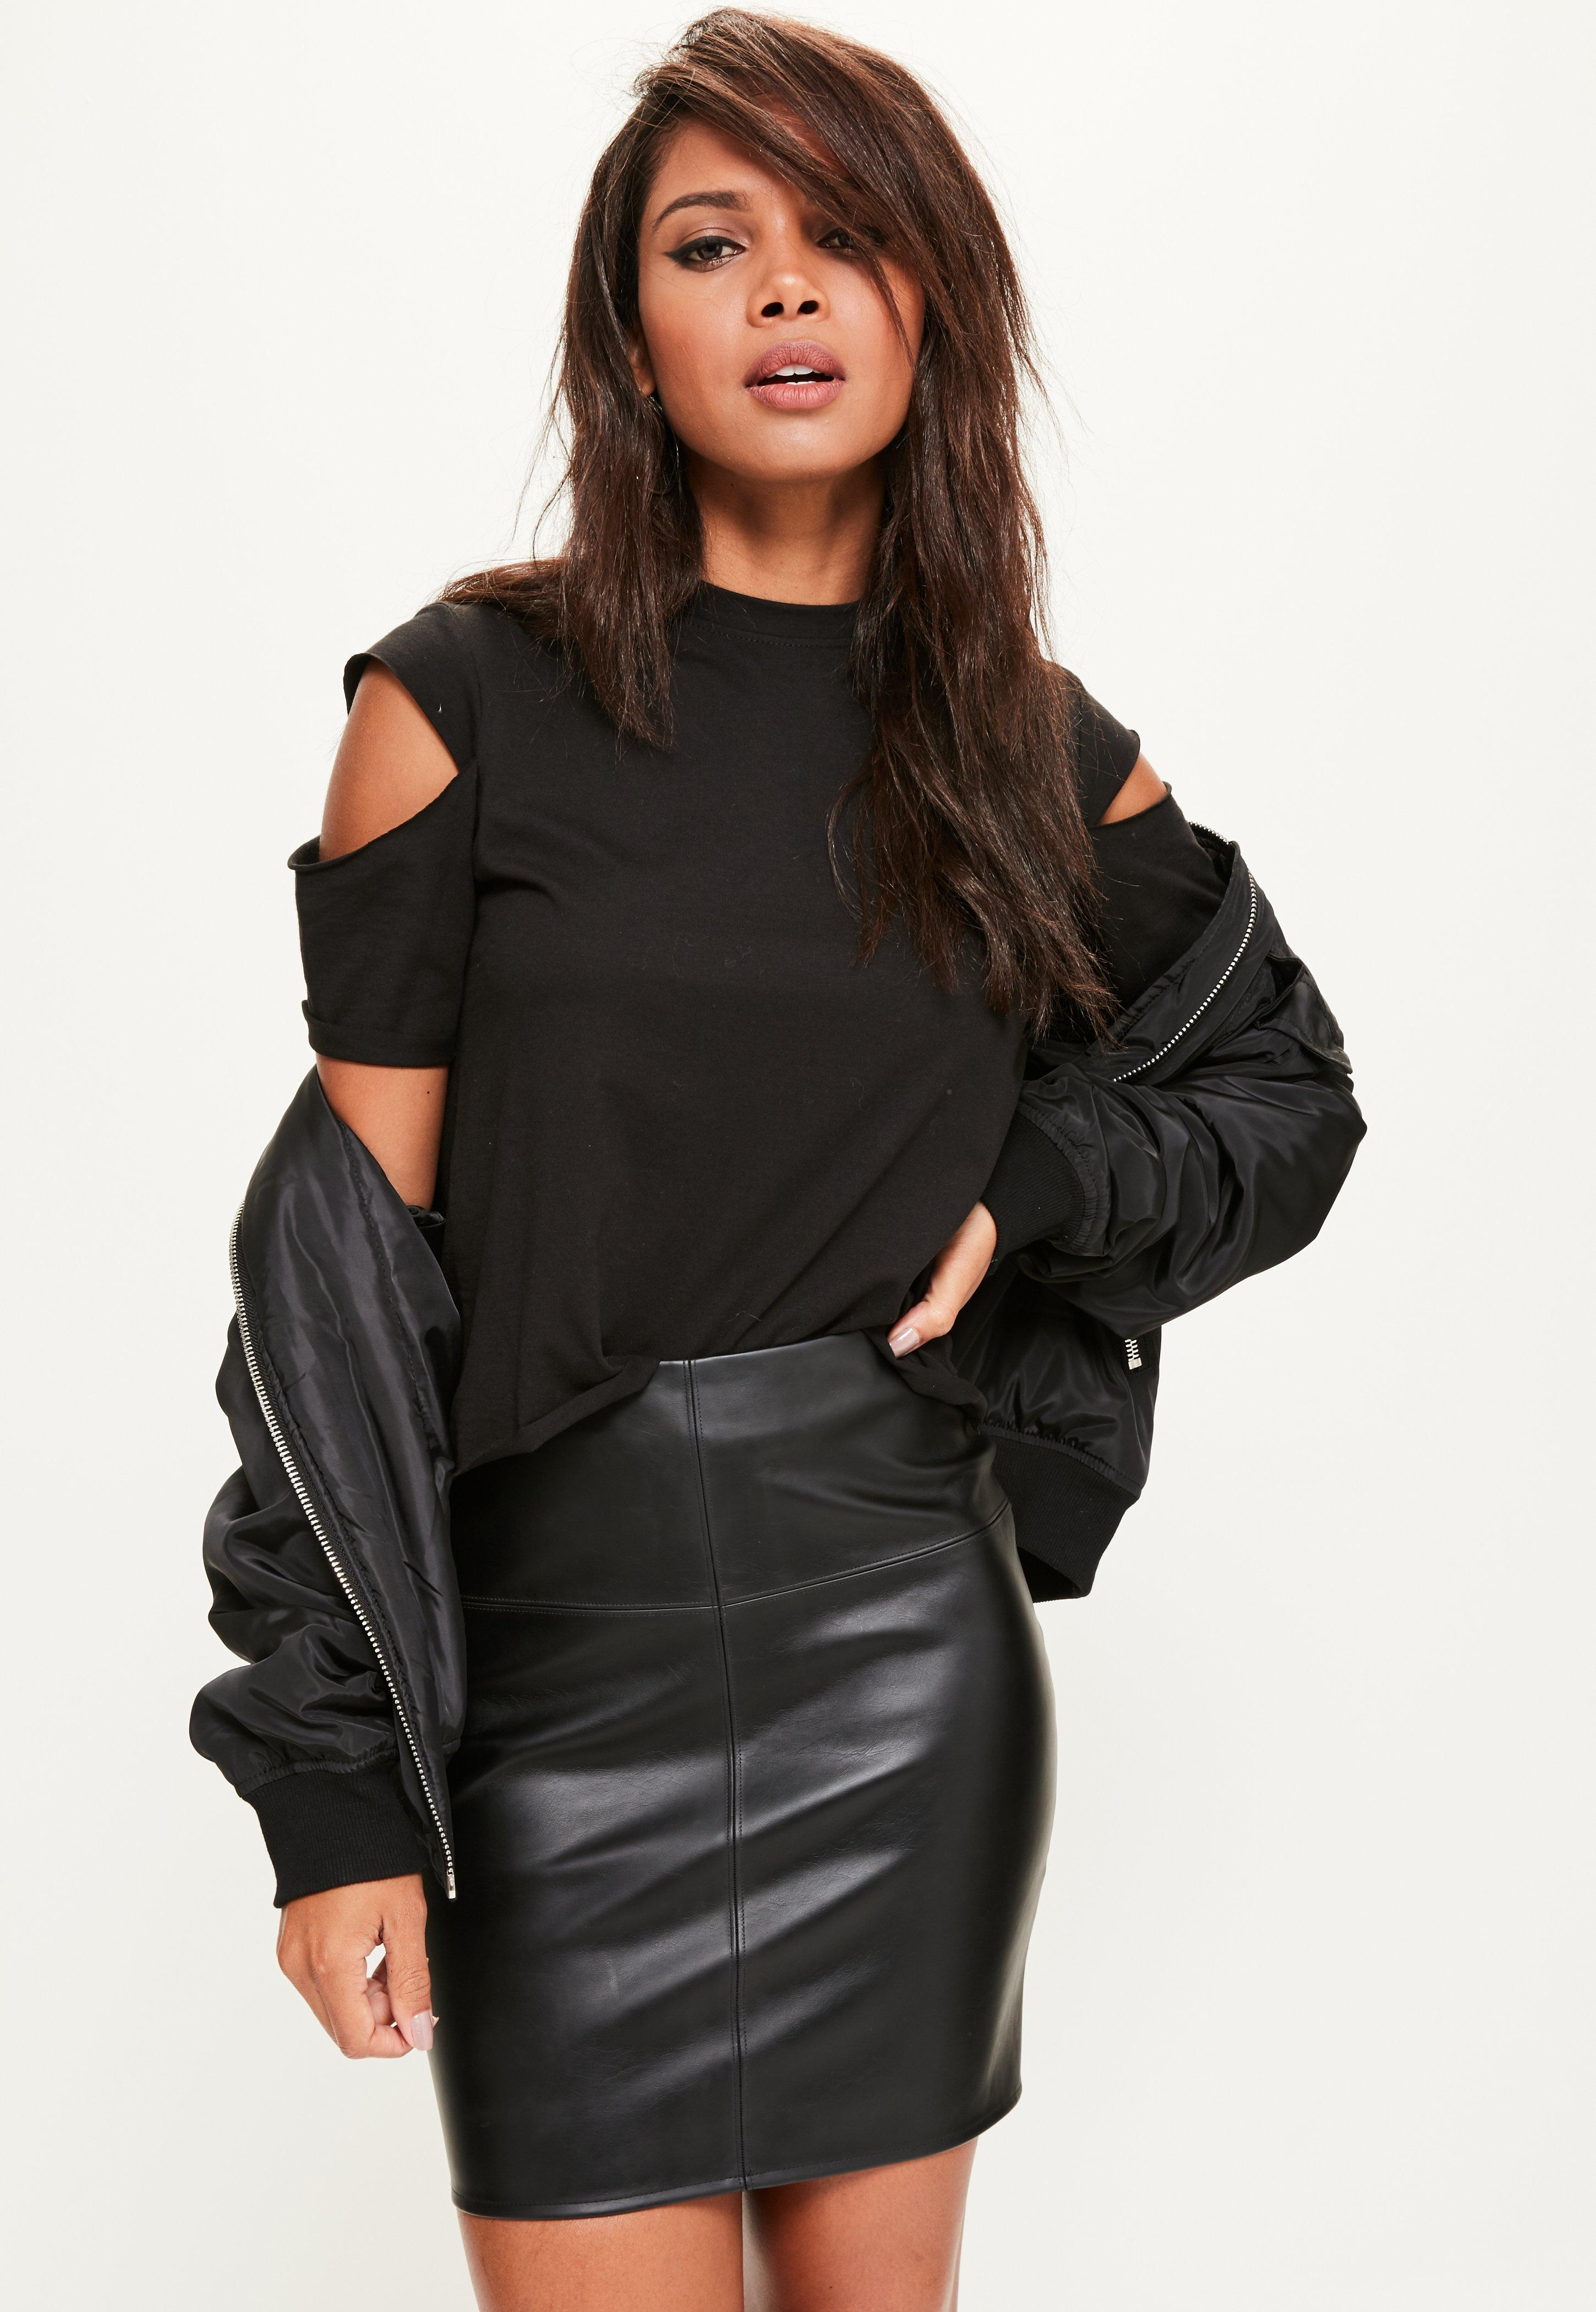 Bordeaux Leather Skirt | Faux Leather Skirt Plus Size | Faux Leather Skirt